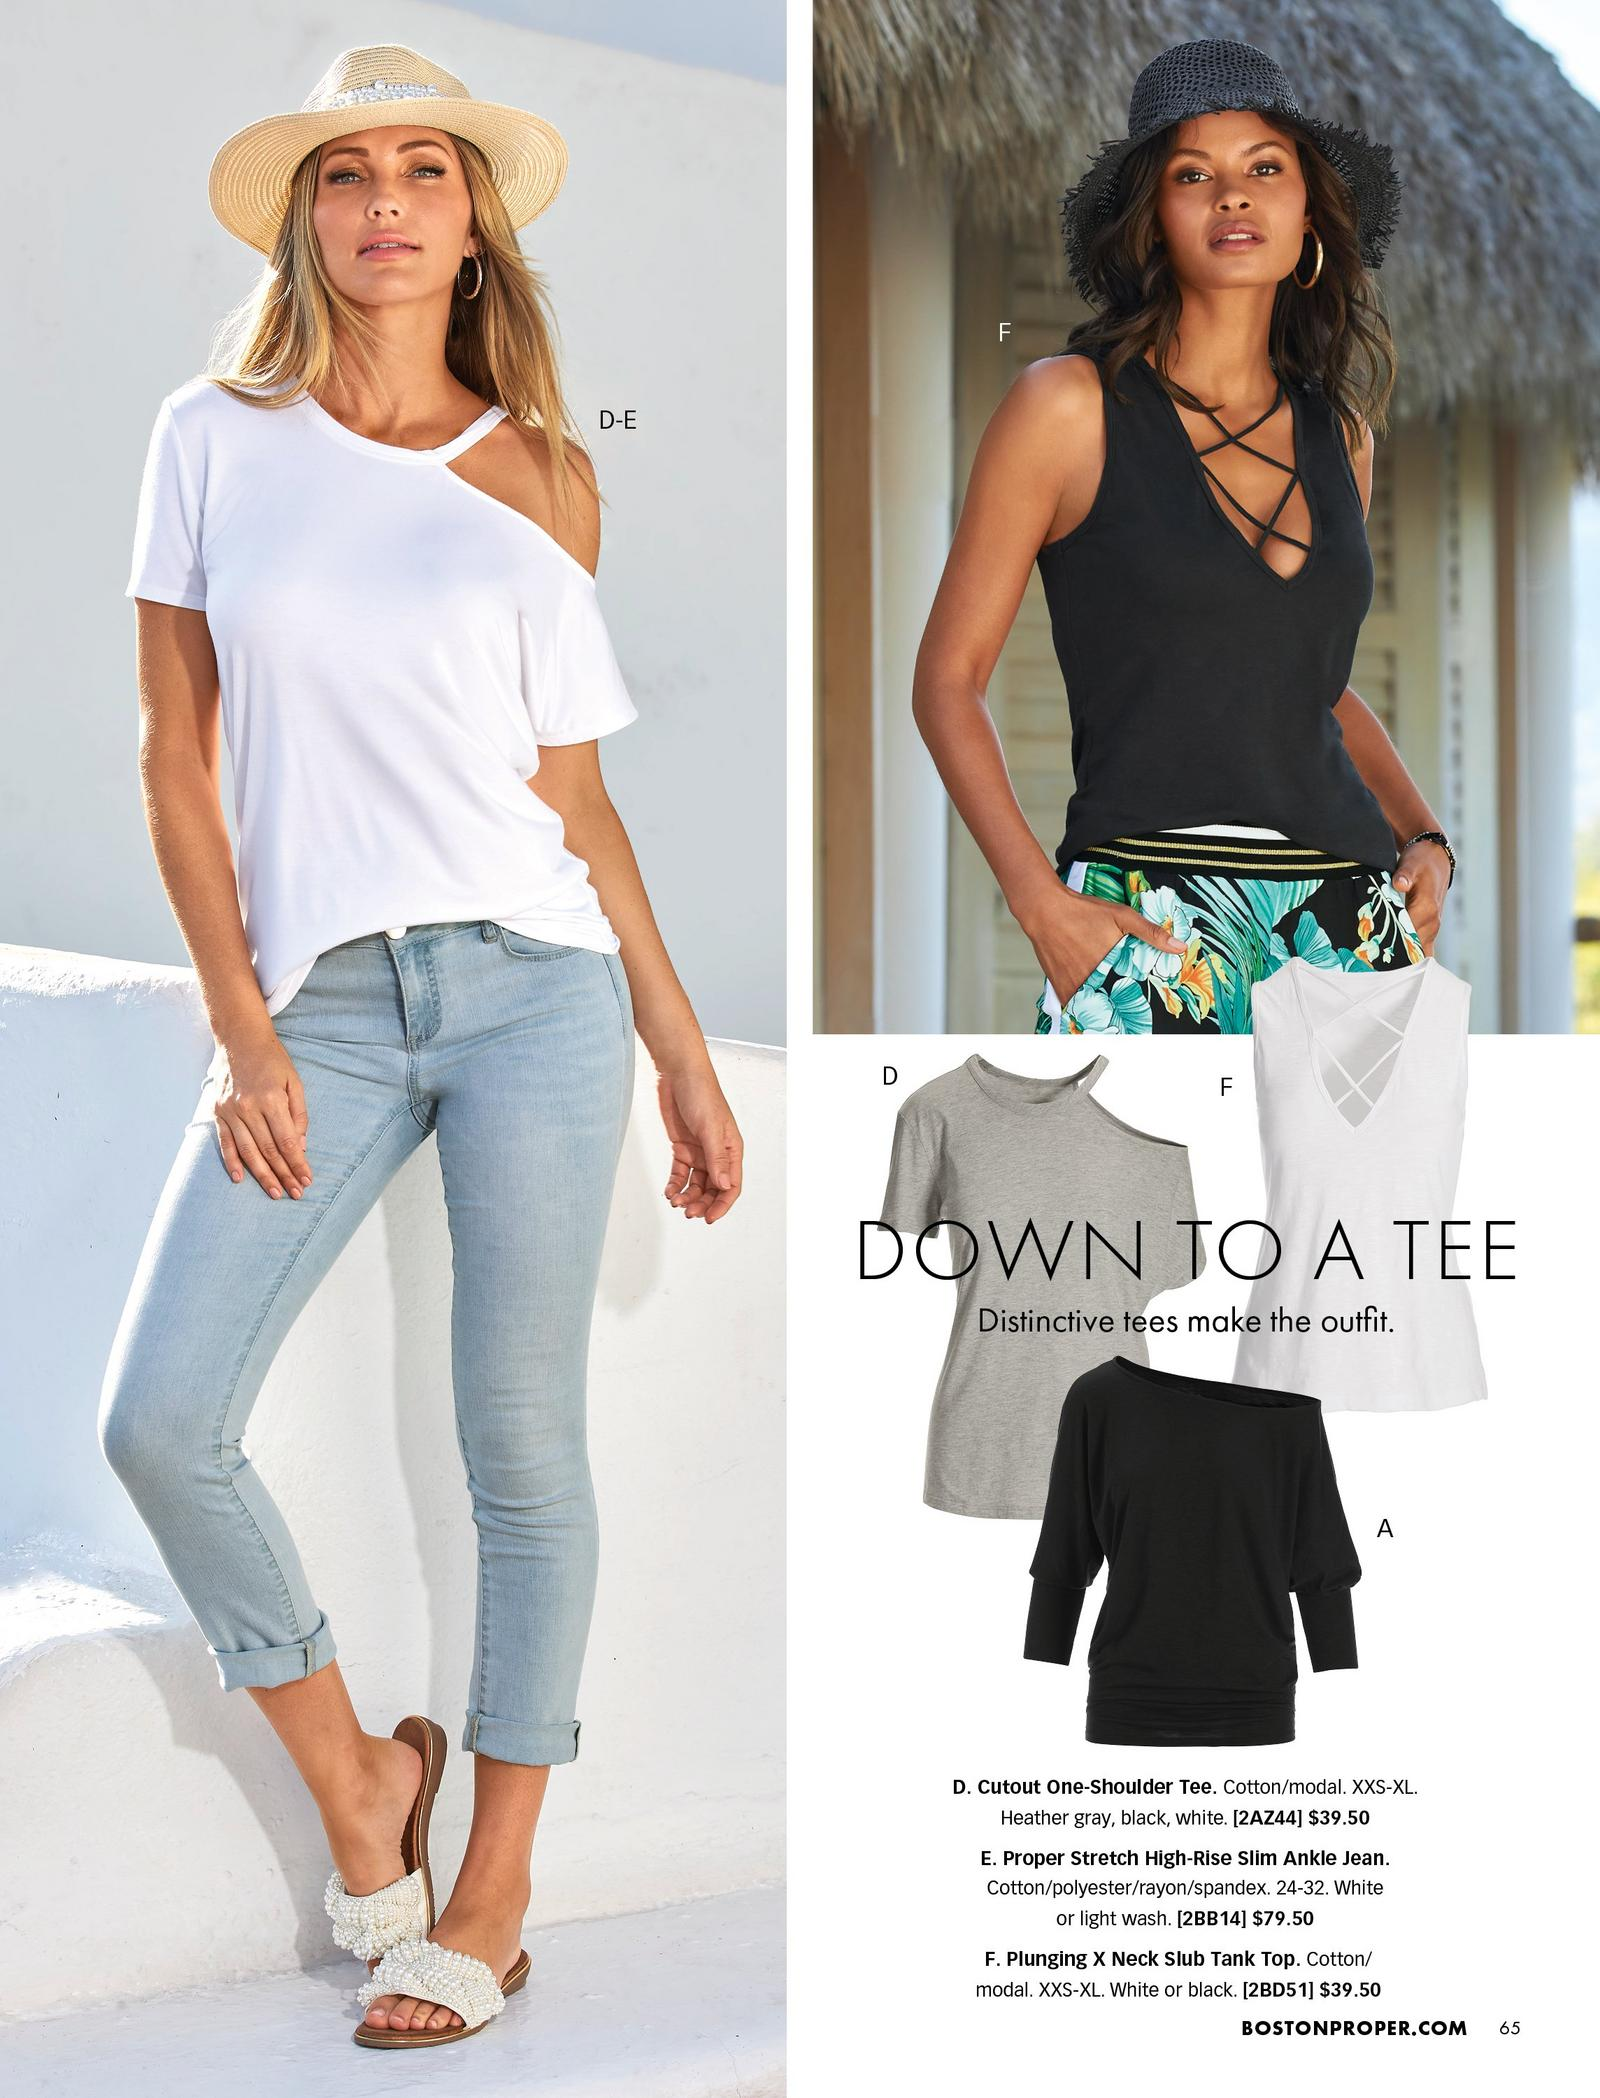 left model wearing a white off-the-shoulder tee, light wash ankle jeans, pearl embellished slide sandals, and straw hat. top right model wearing a black x-neck tank top, jungle print pants, and black hat. also shown: gray off-the-shoulder tee, white x-neck tank top, and black off-the-shoulder slouchy long-sleeve top.